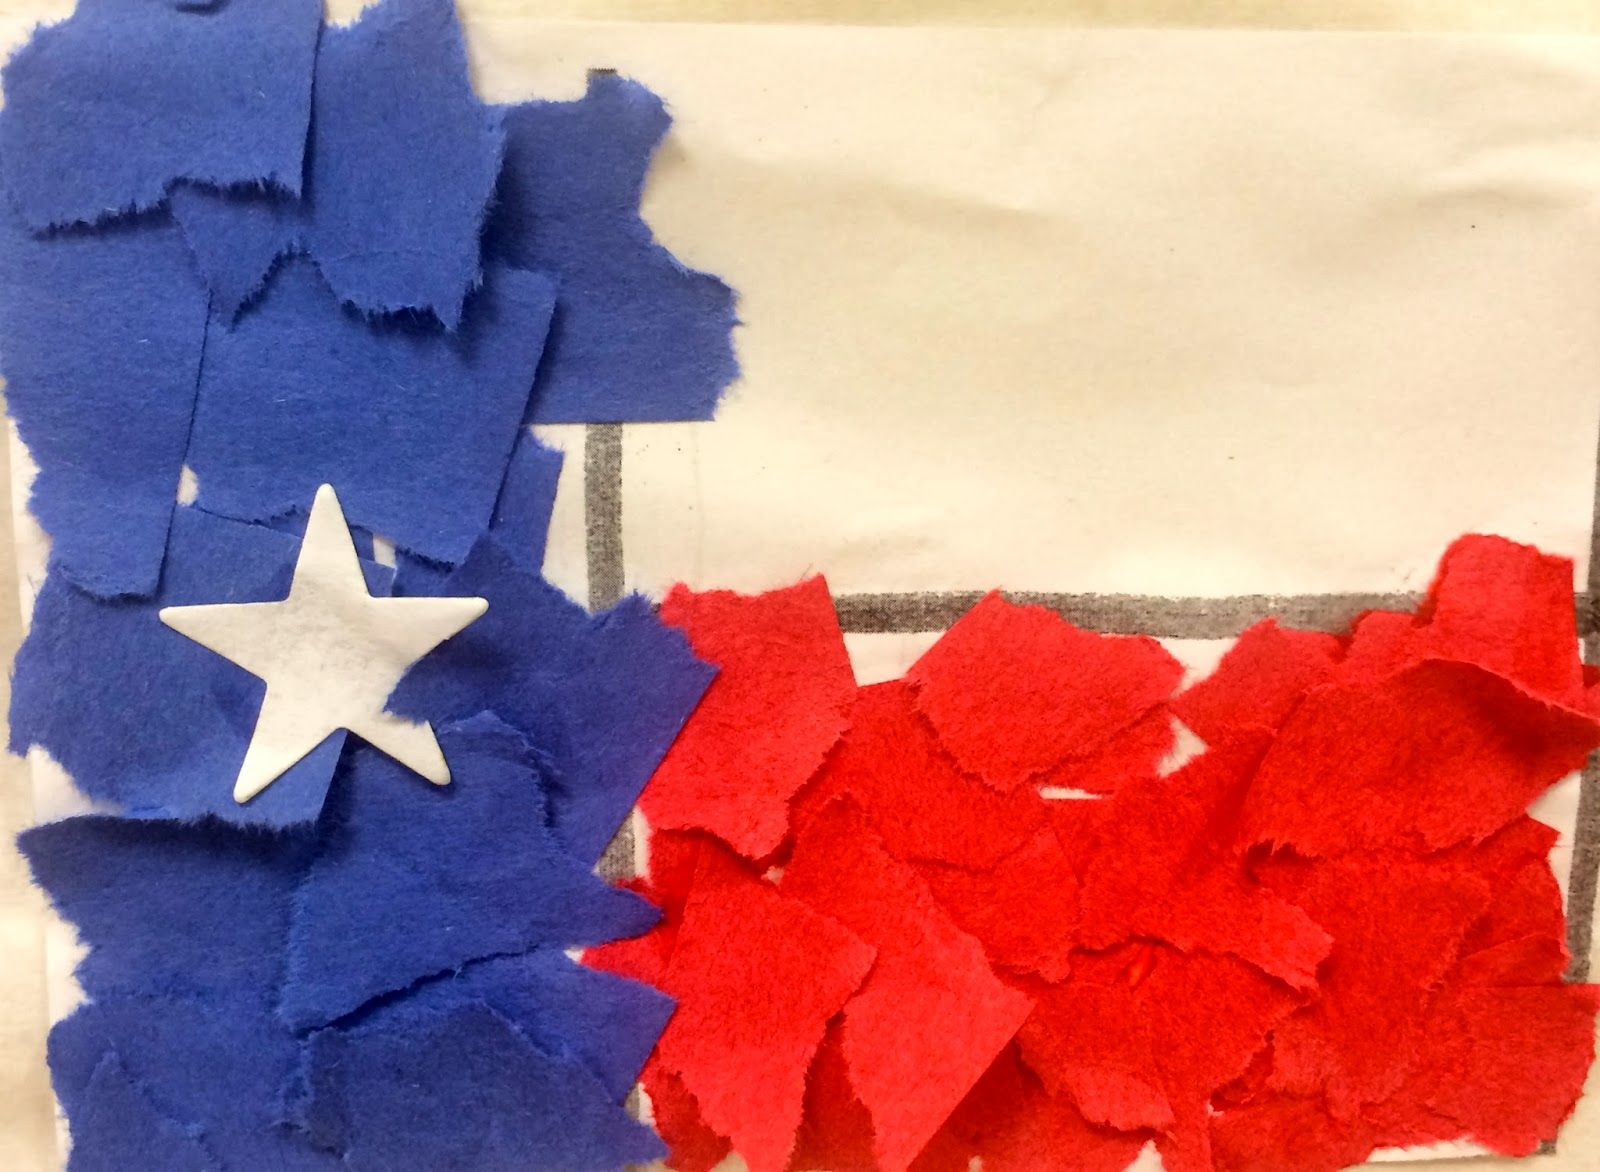 Splendor in kinder texas flag tear art and graph cowboysrodeo splendor in kinder texas flag tear art and graph buycottarizona Images